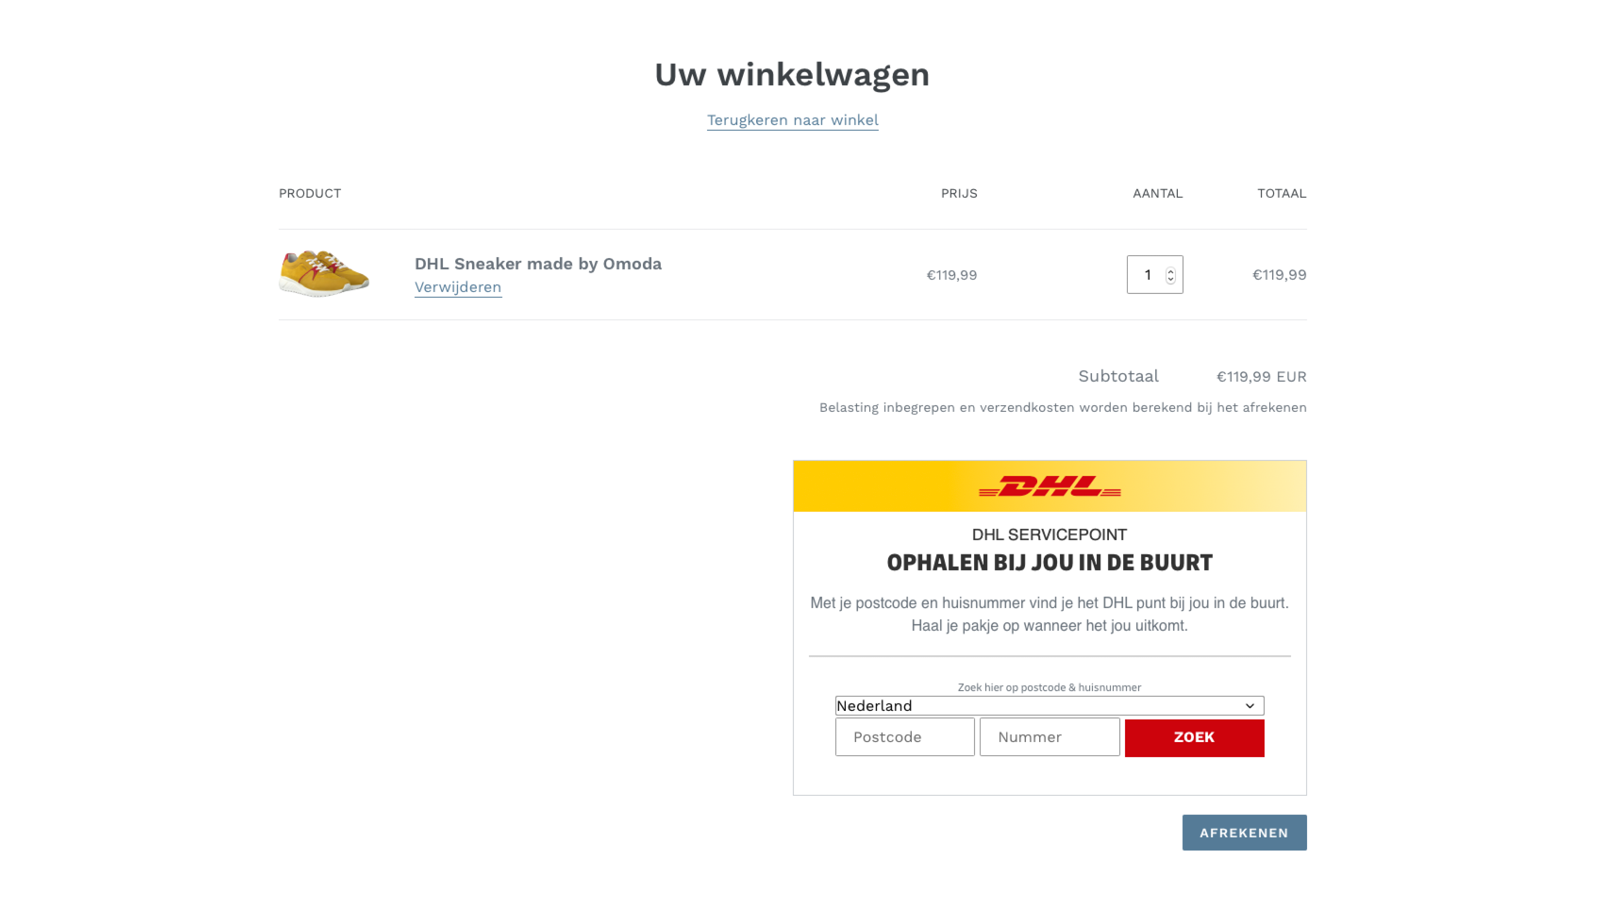 The nearest DHL point is shown in the shopping cart